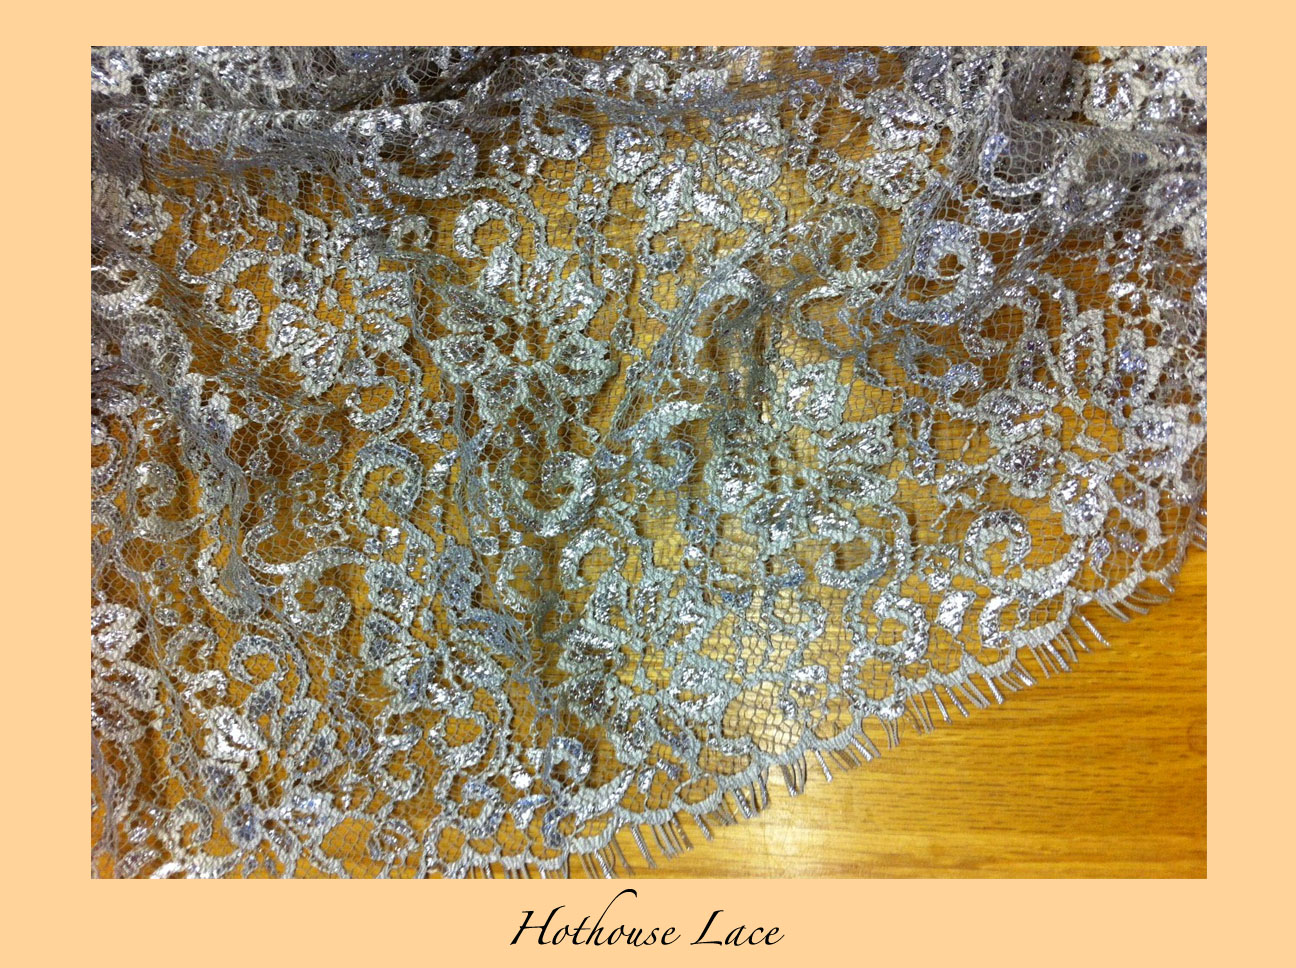 hothouse lace.jpg